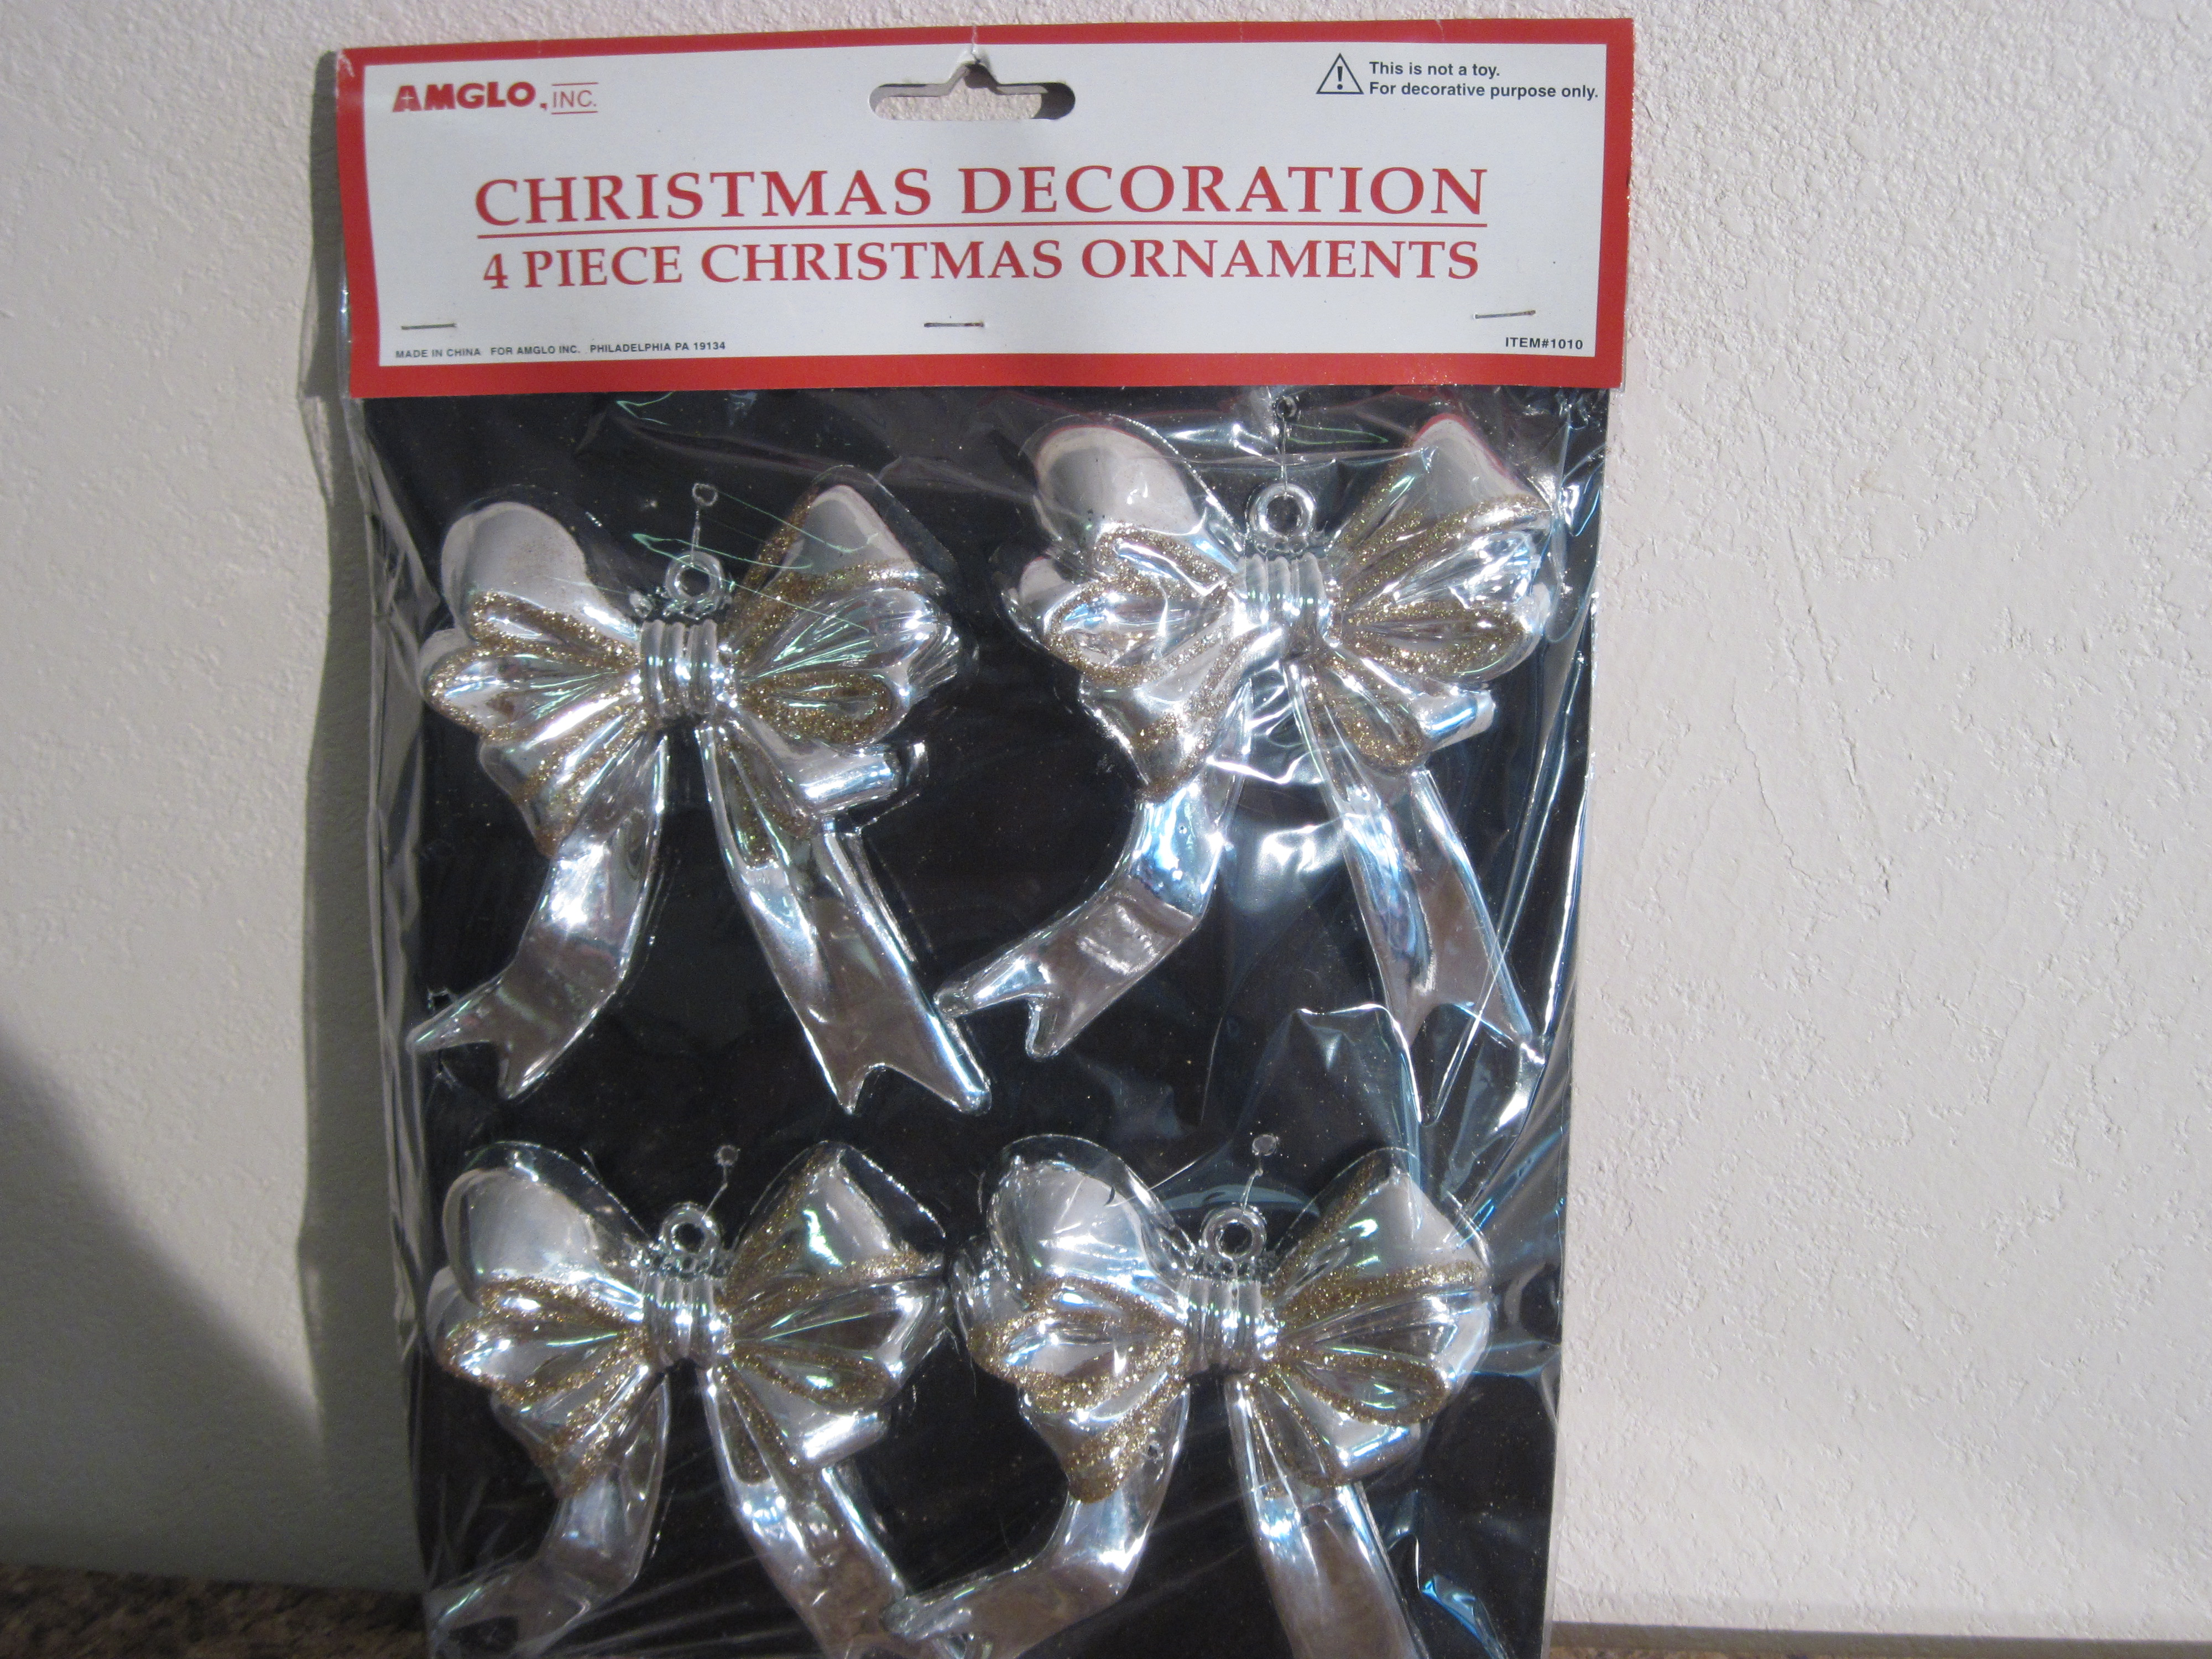 4 Piece Christmas Ornaments - Silver Bows